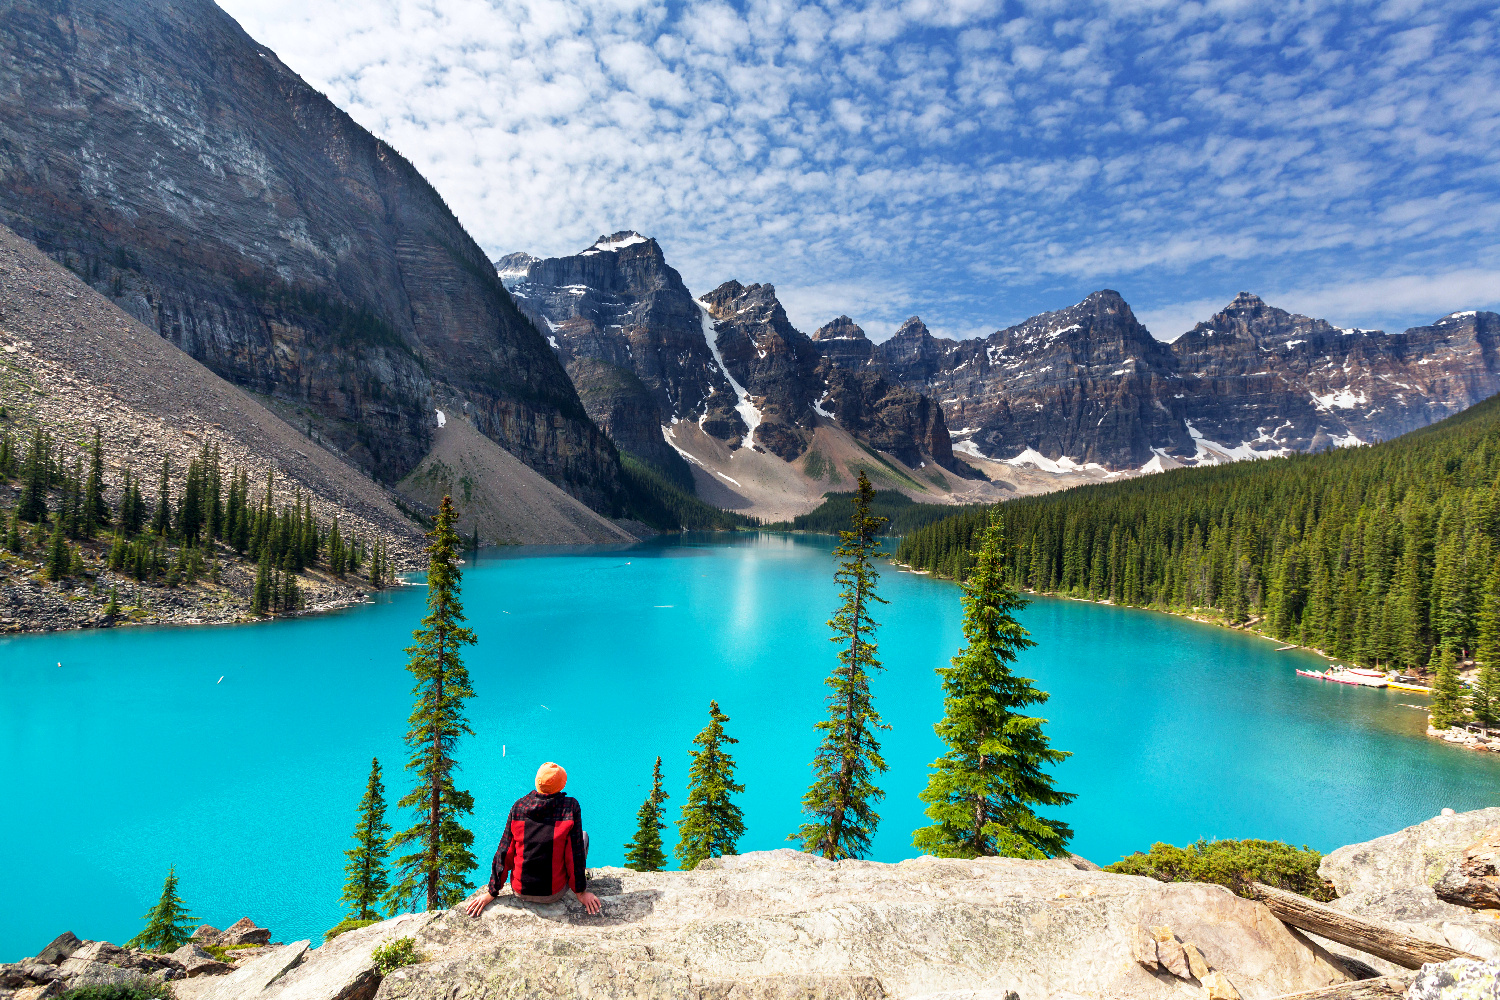 Kanada Alberta Moraine Lake, Banff-Nationalpark 123RF